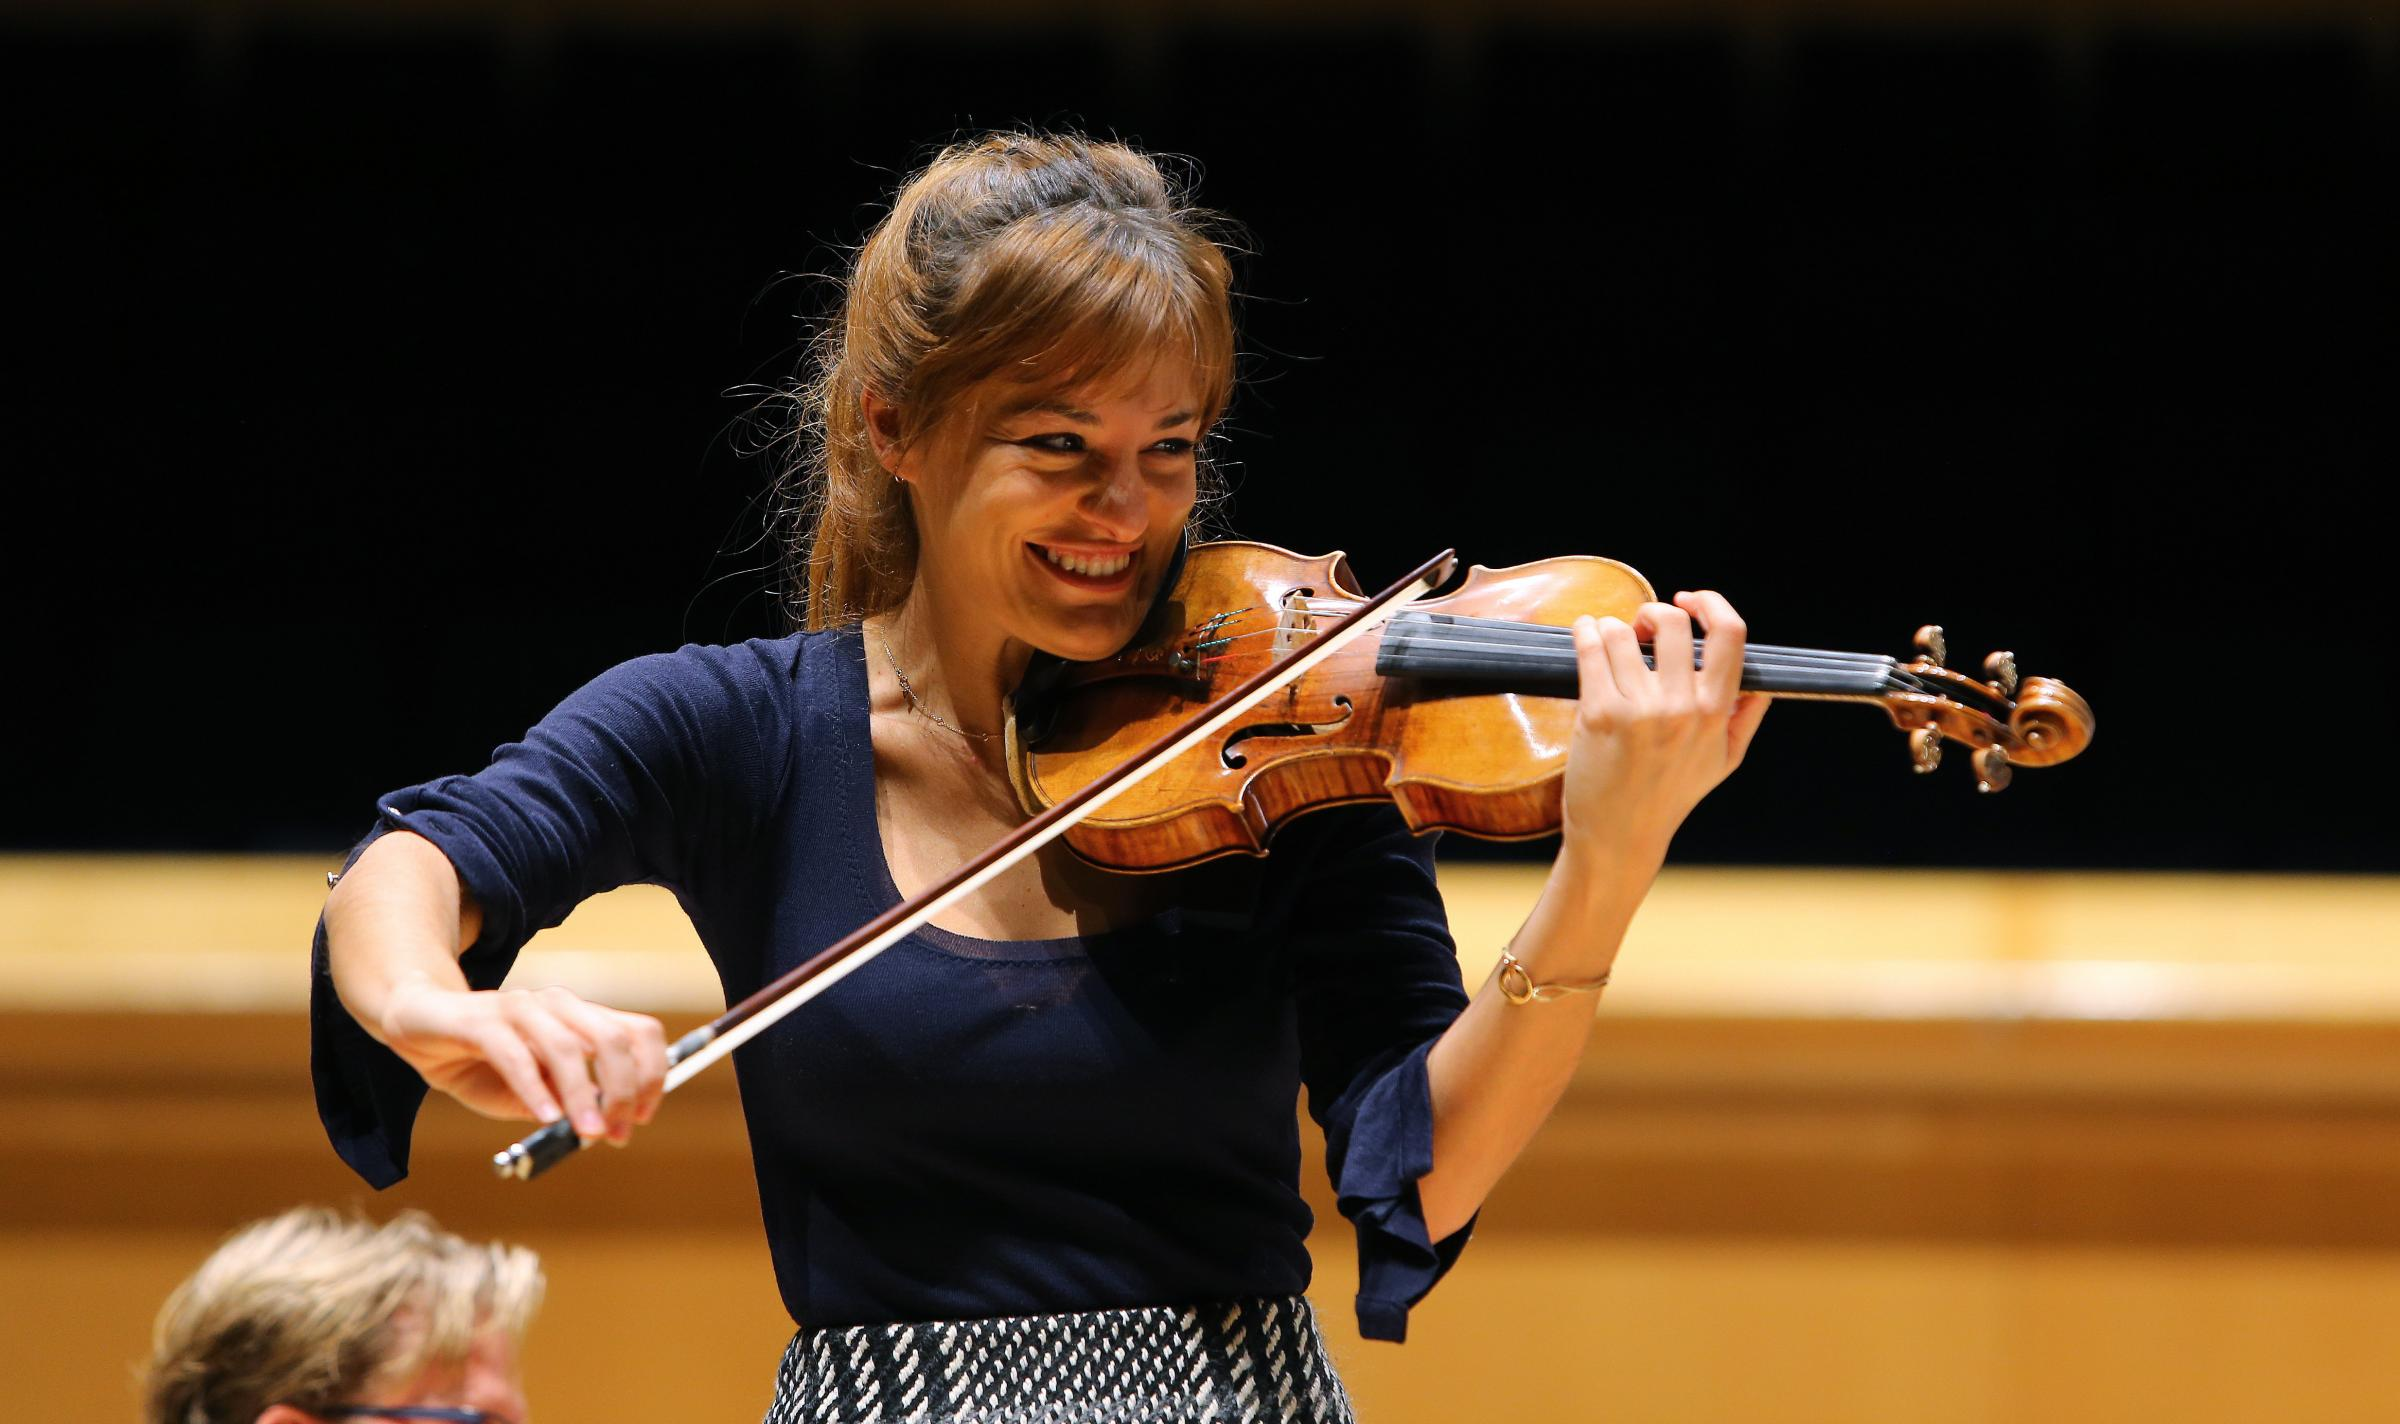 Violinist Nicola Benedetti pictured in rehearsal with the RSNO in the Royal Concert hall, Glasgow. They were rehearsing the legendary jazz musician Wynton Marsalis' Violin Concerto in D which receives it's Scottish premiere in the Caird hall, Du